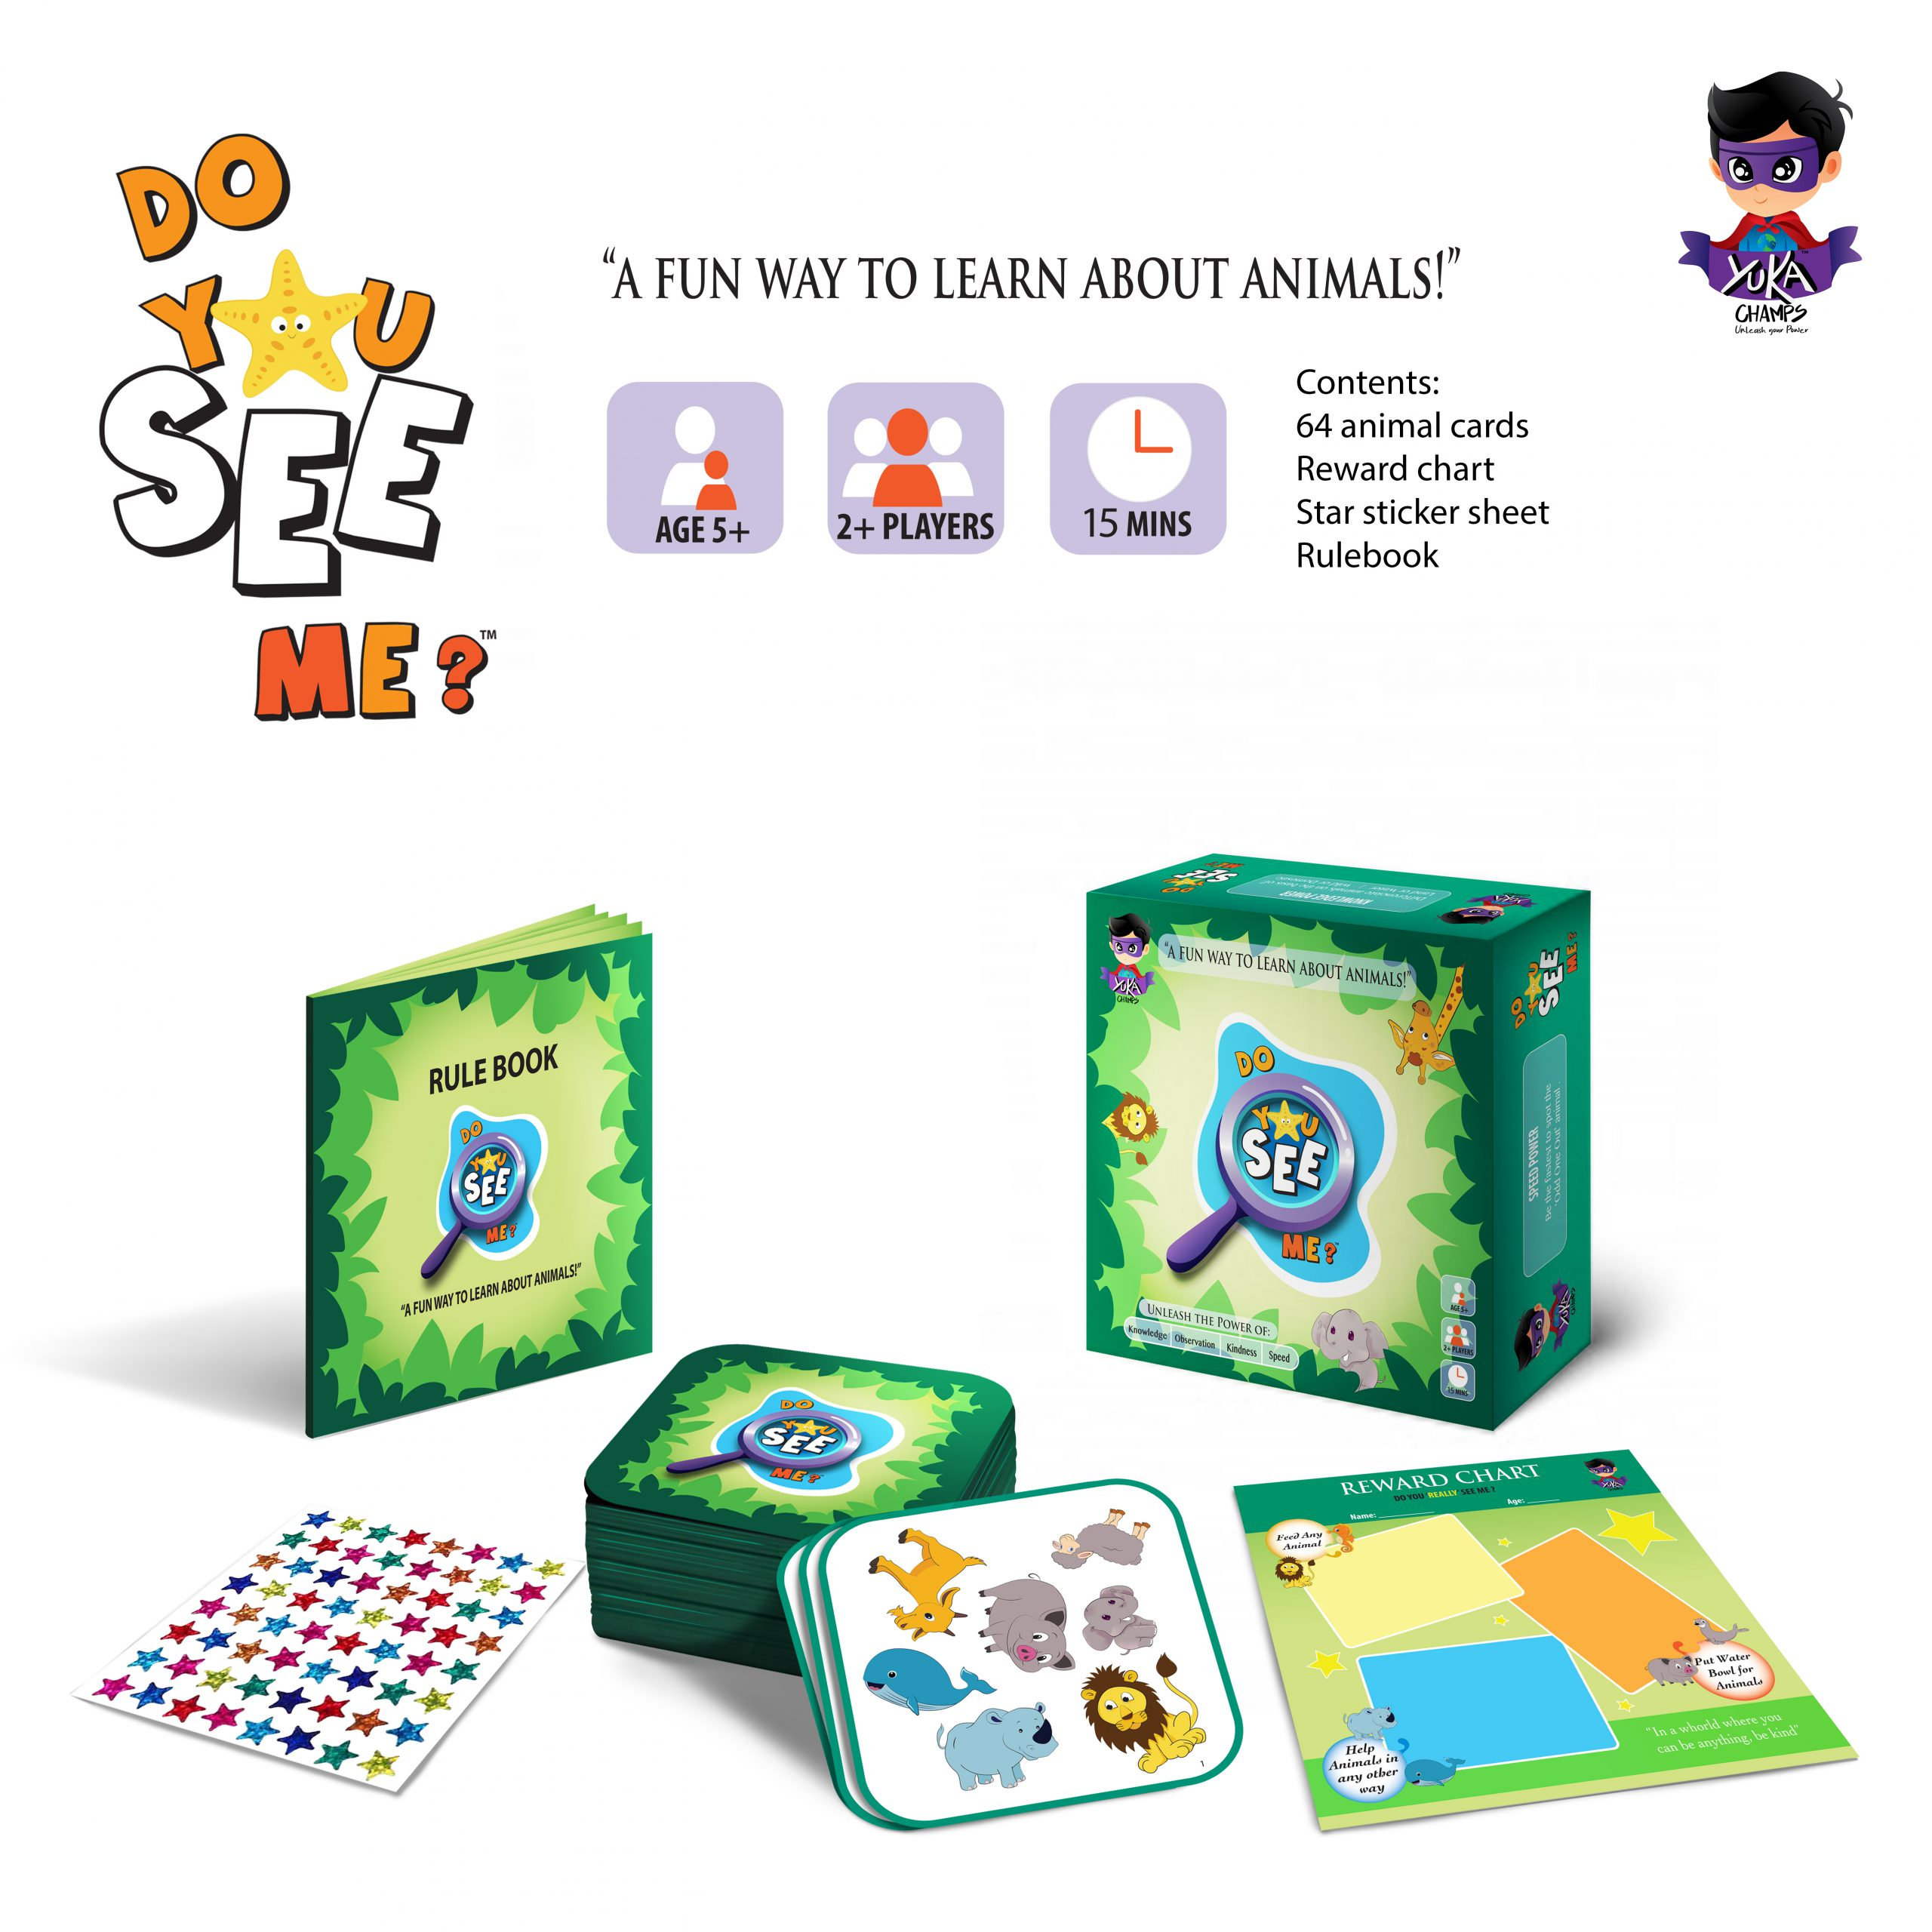 DO-YOU-SEE-ME-Mock-up-with-description-1.jpg